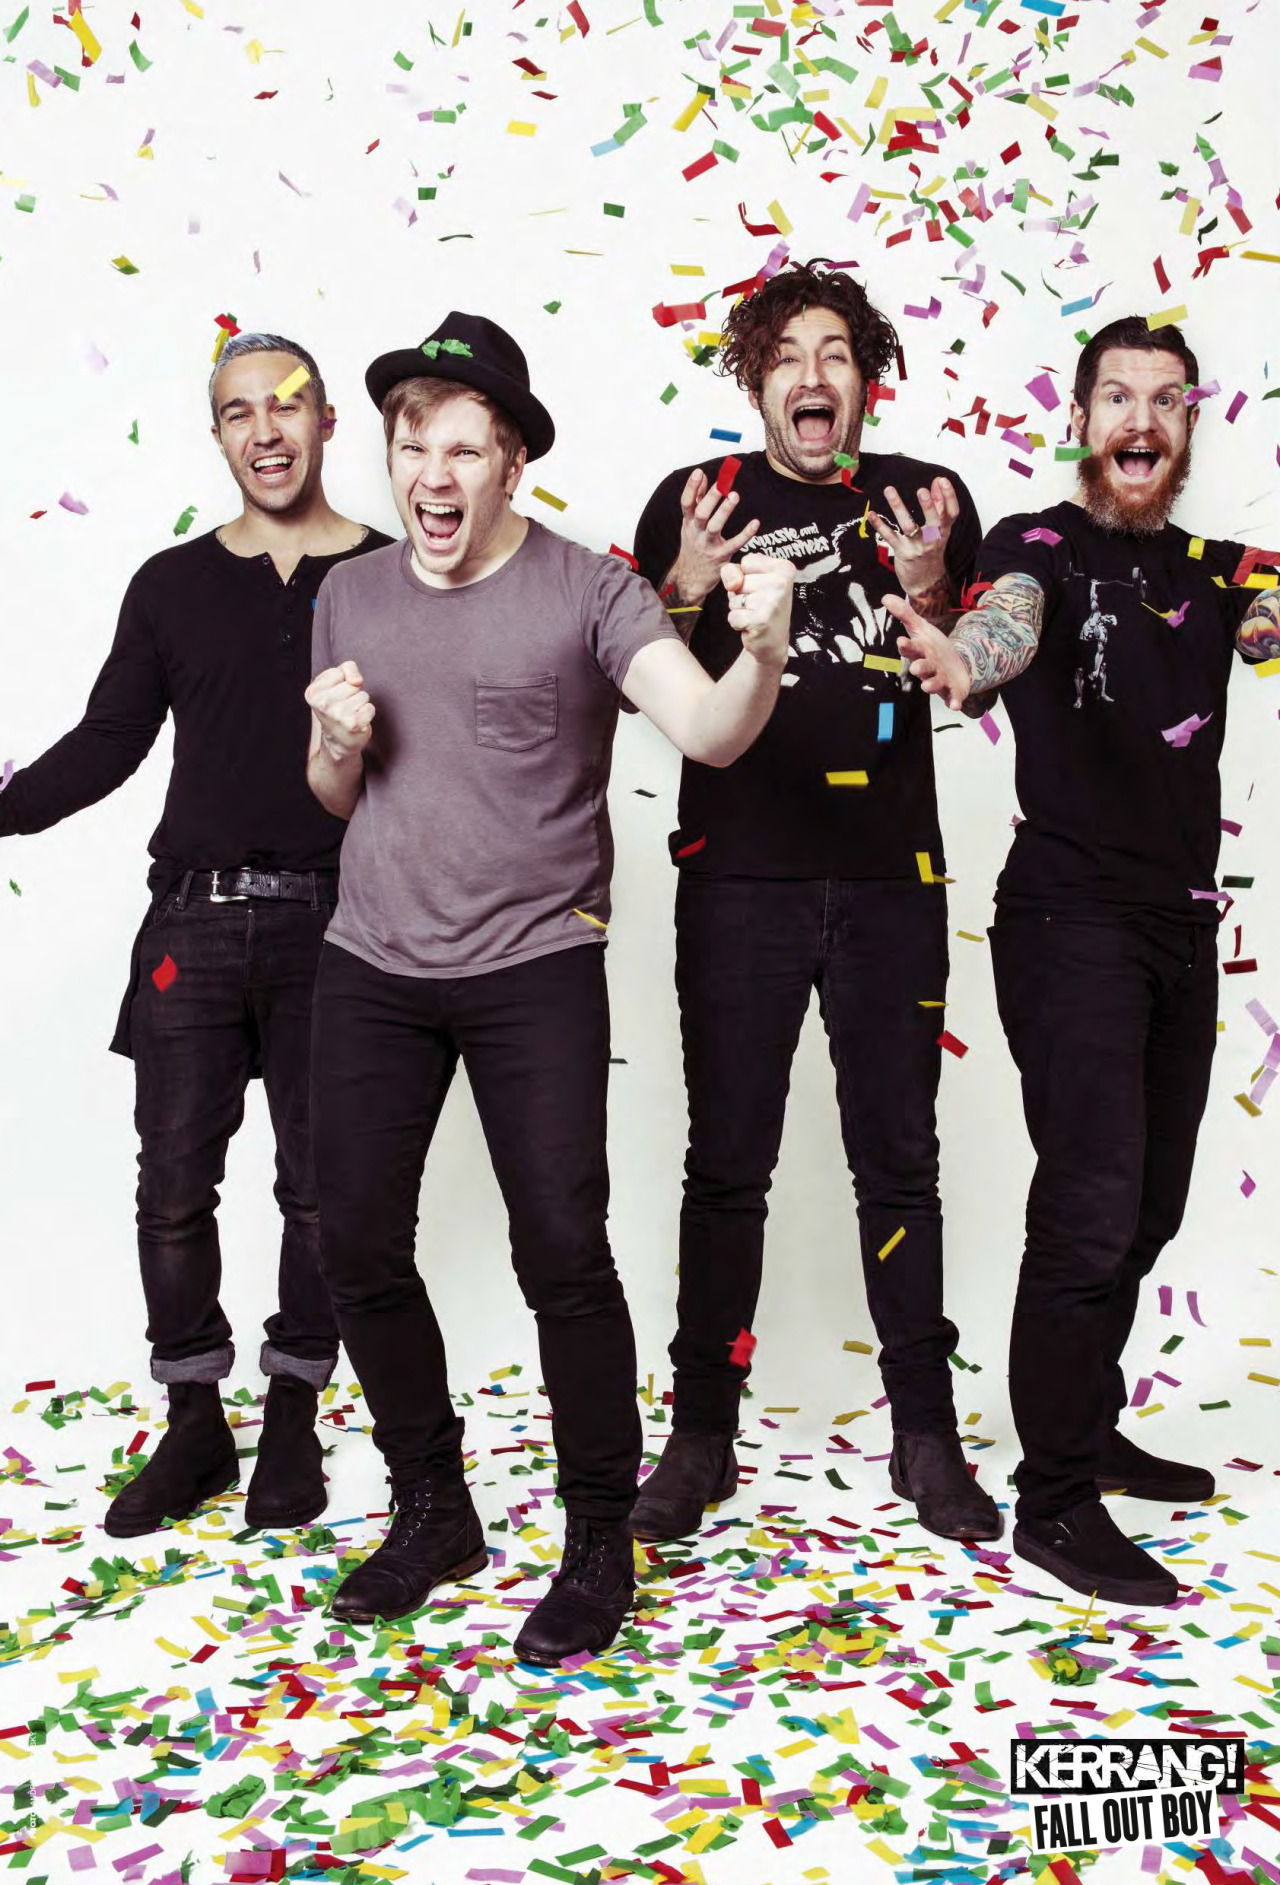 Fall Out Boy Mania Wallpaper Iphone Fall Out Boy Poster From Today S Kerrang Magazine